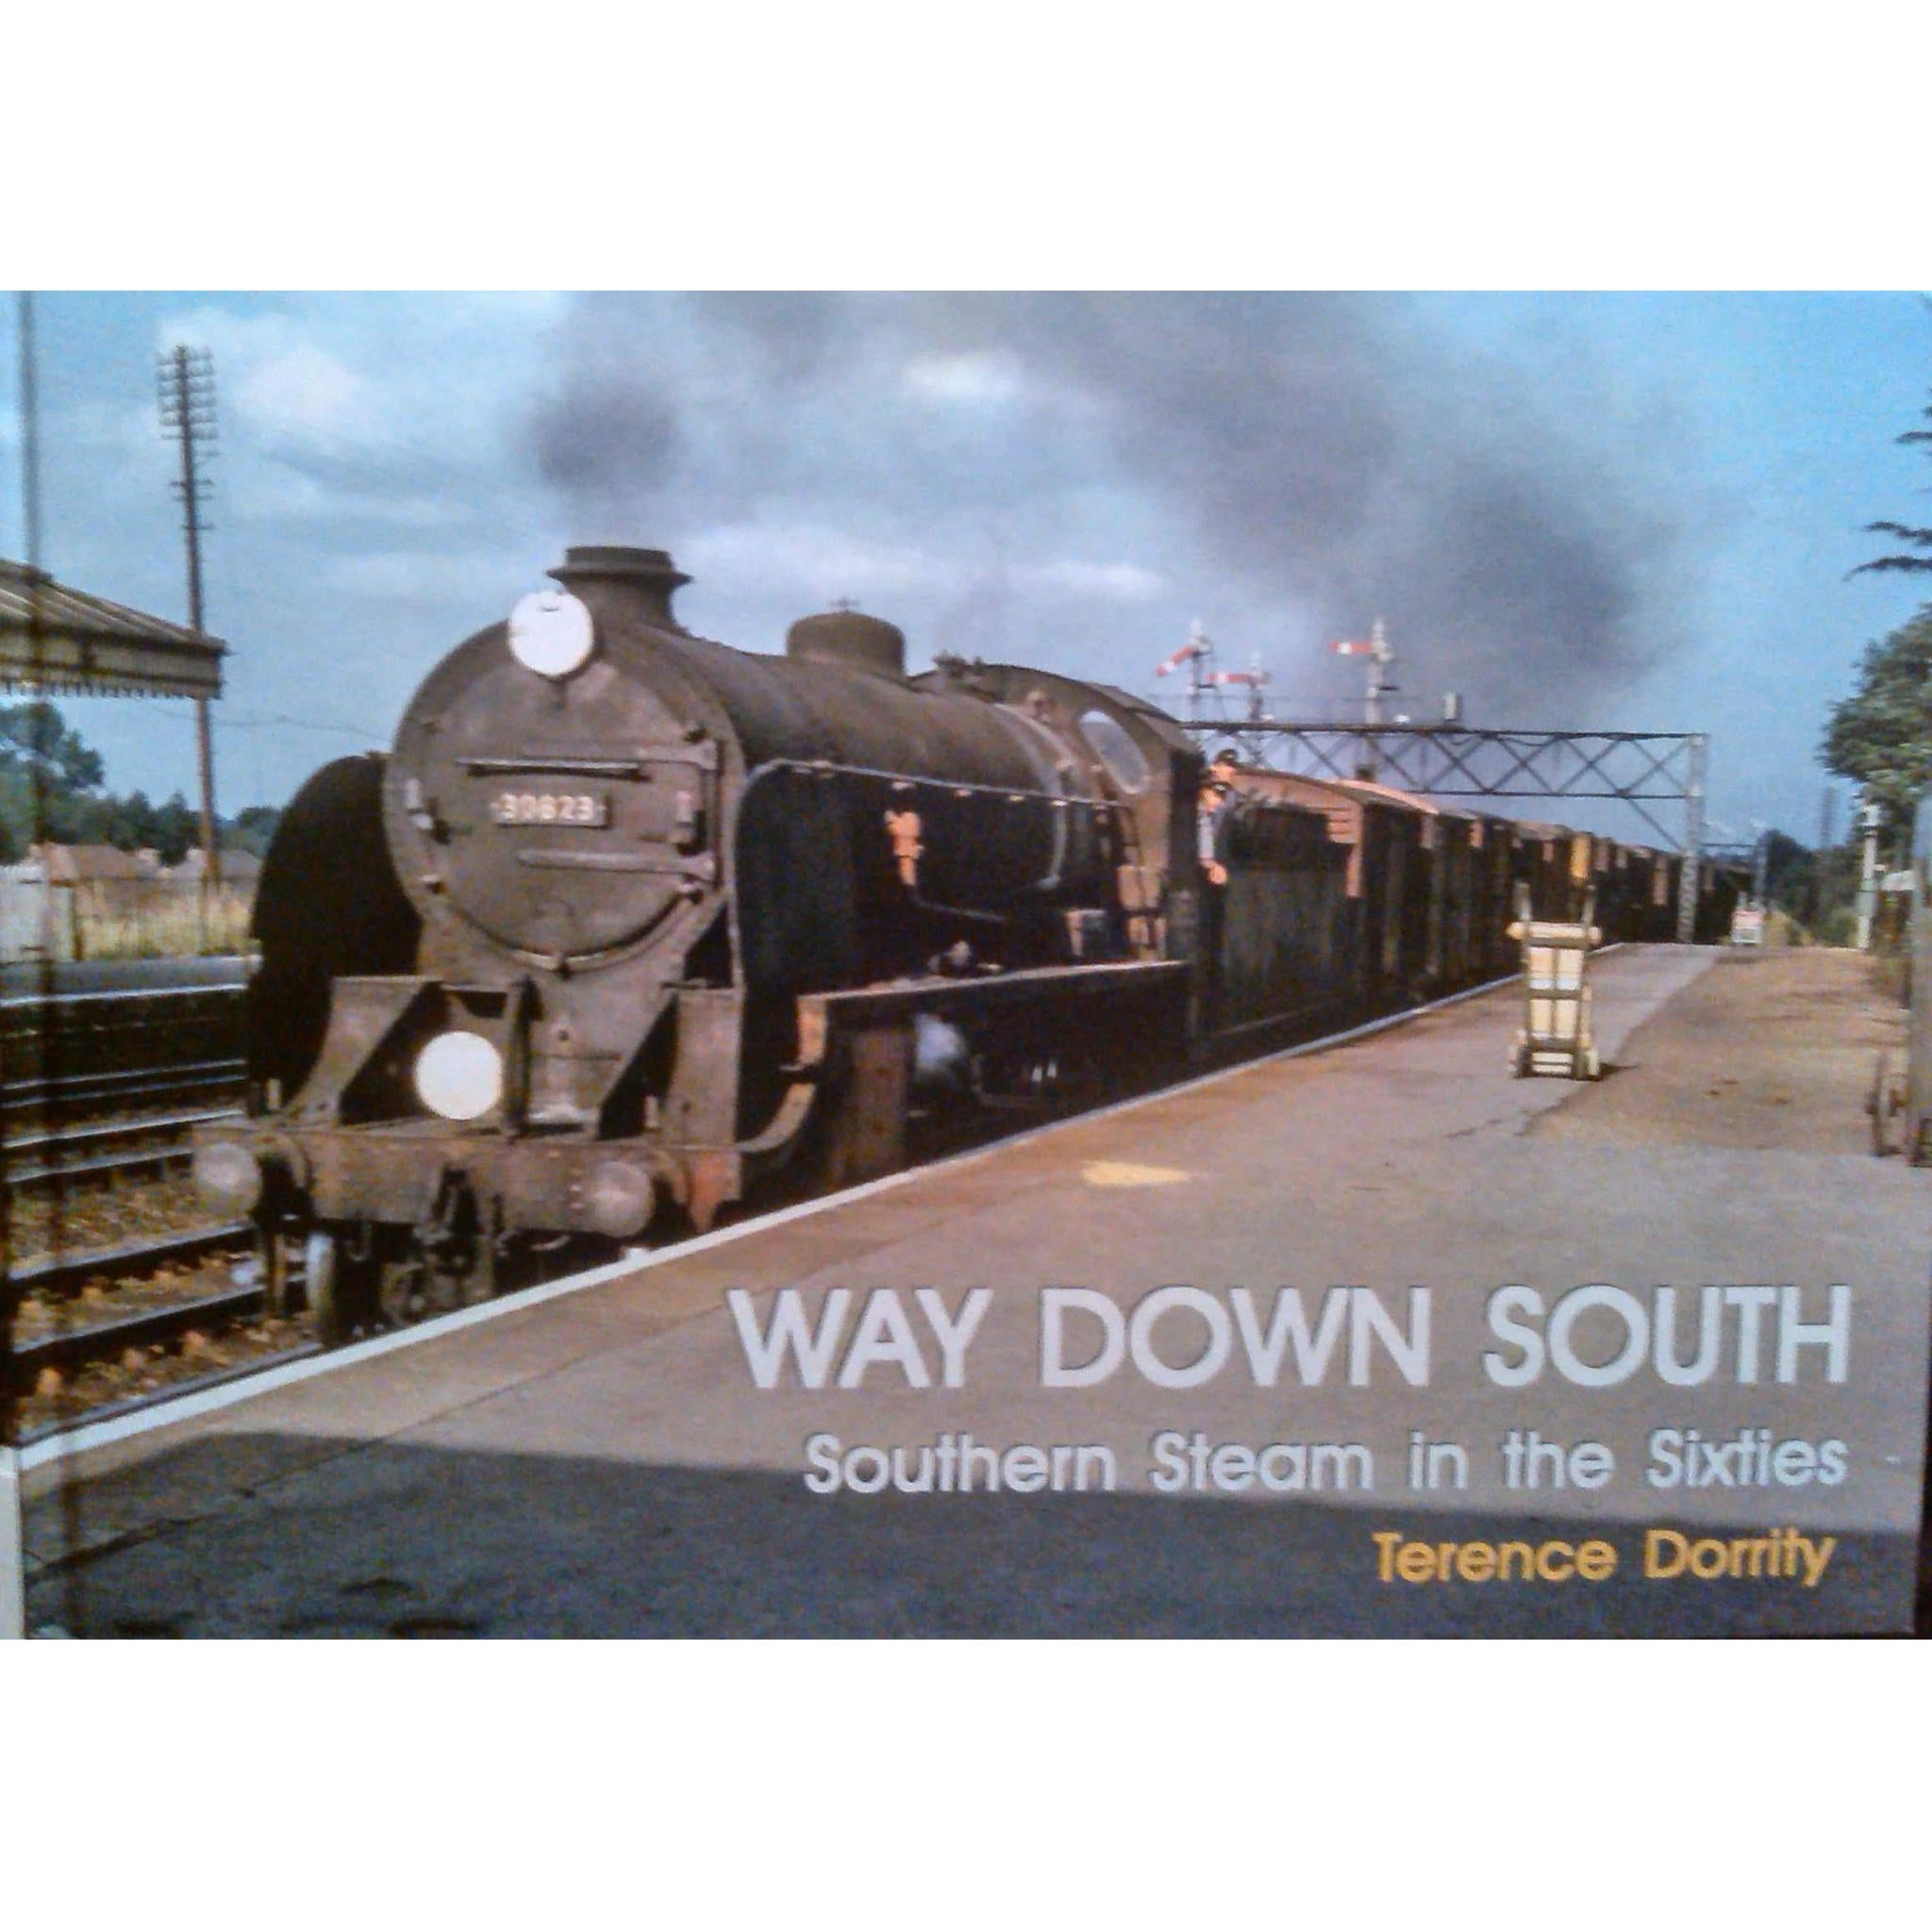 Way Down South - Southern Steam in the Sixties